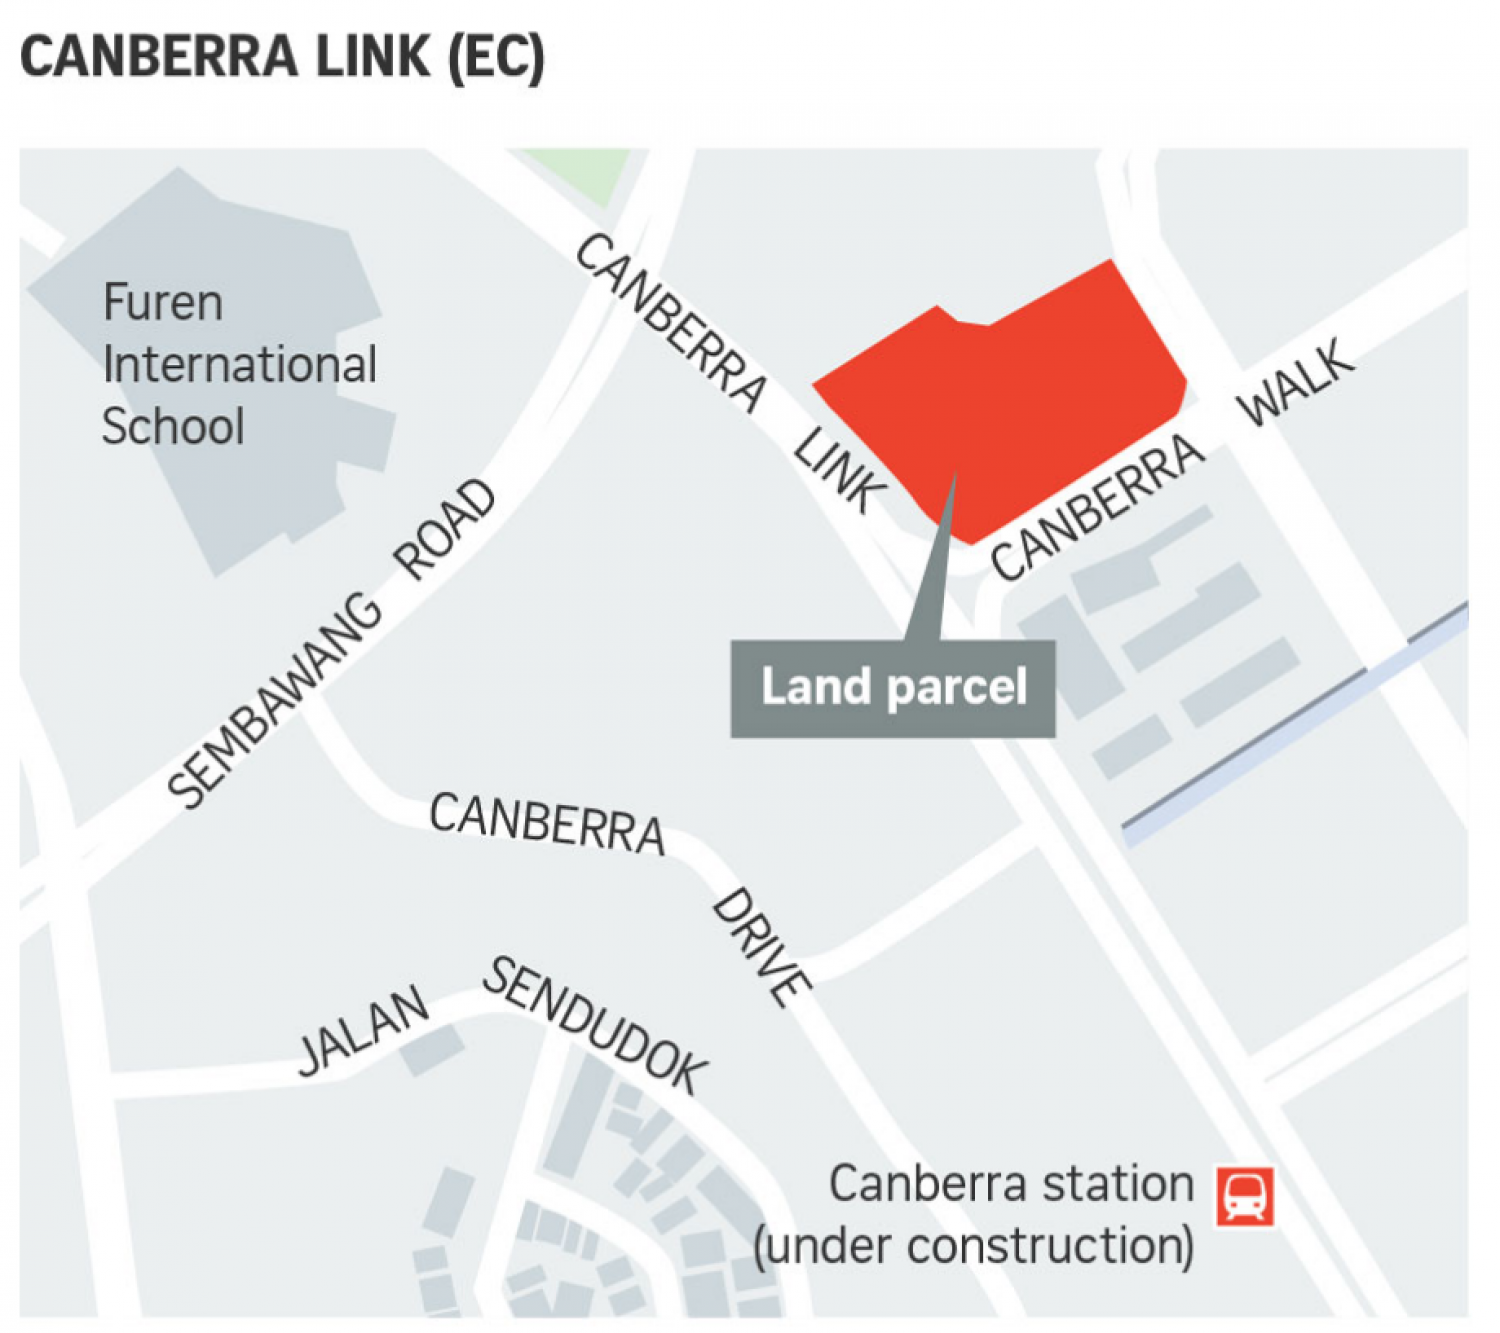 New EC at Canberra Link Map